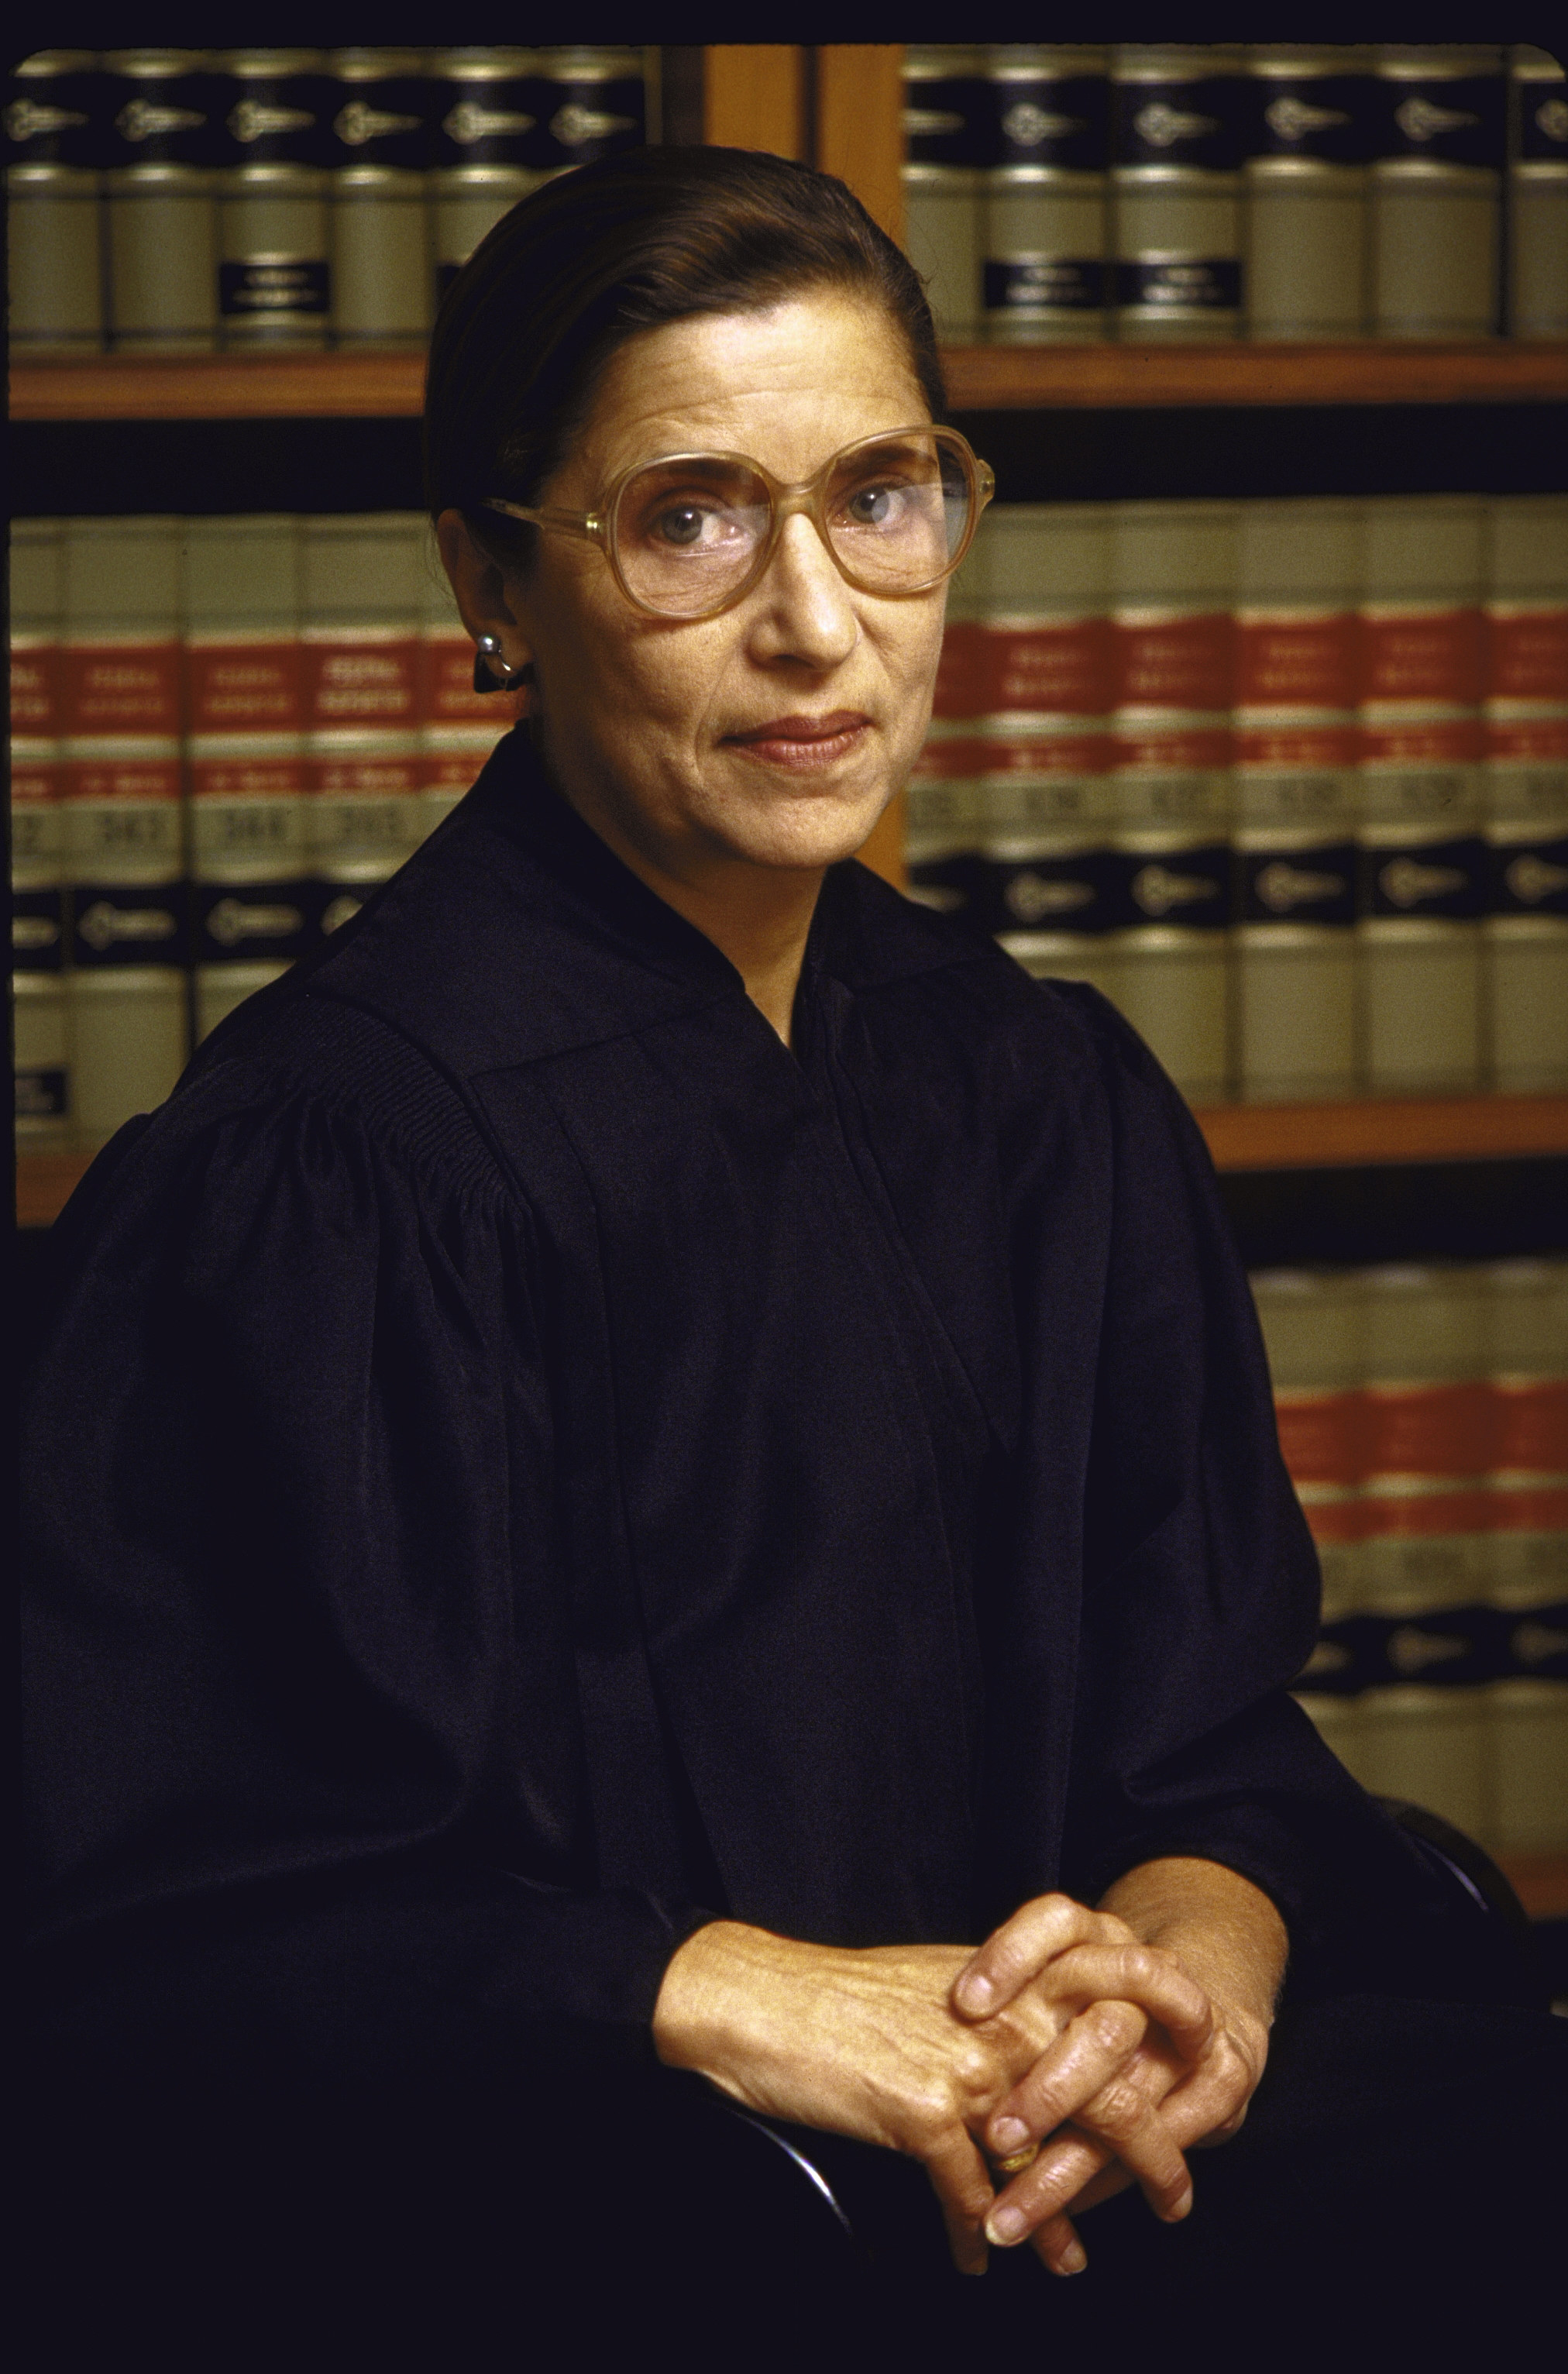 Ginsburg in robes and in front of a bookcase